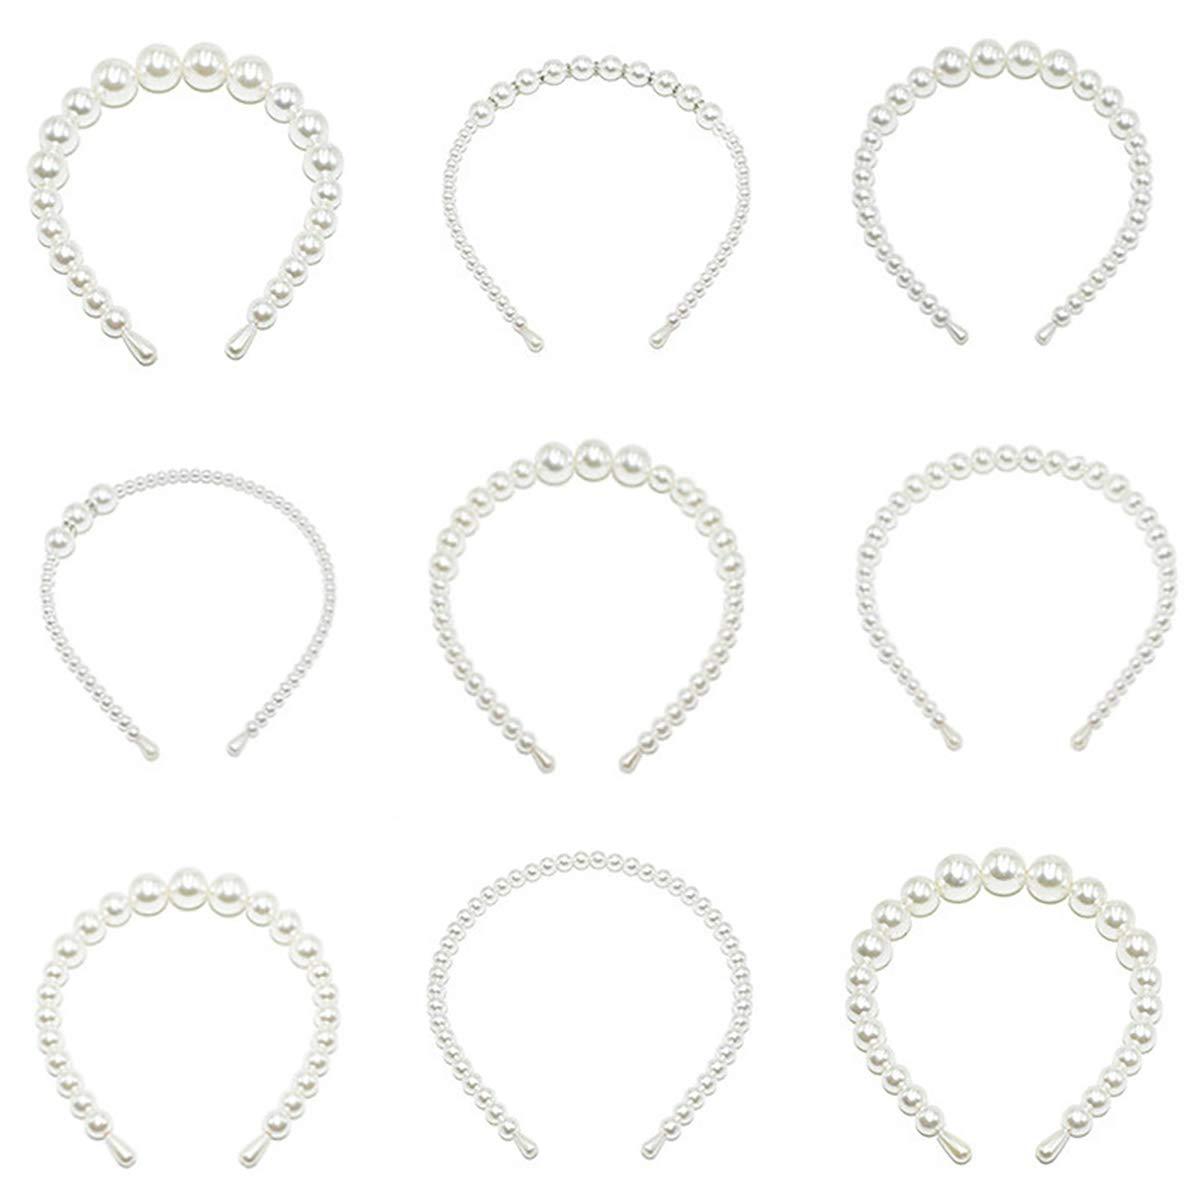 Hedume Set of 9 Pearls Headbands, White Faux Pearl Rhinestones Hairbands, Wedding Bridal Elegant Bling Headwear Styling Tools Accessories, Hair Hoop for Women Girls for Birthday Valentines Day Gifts